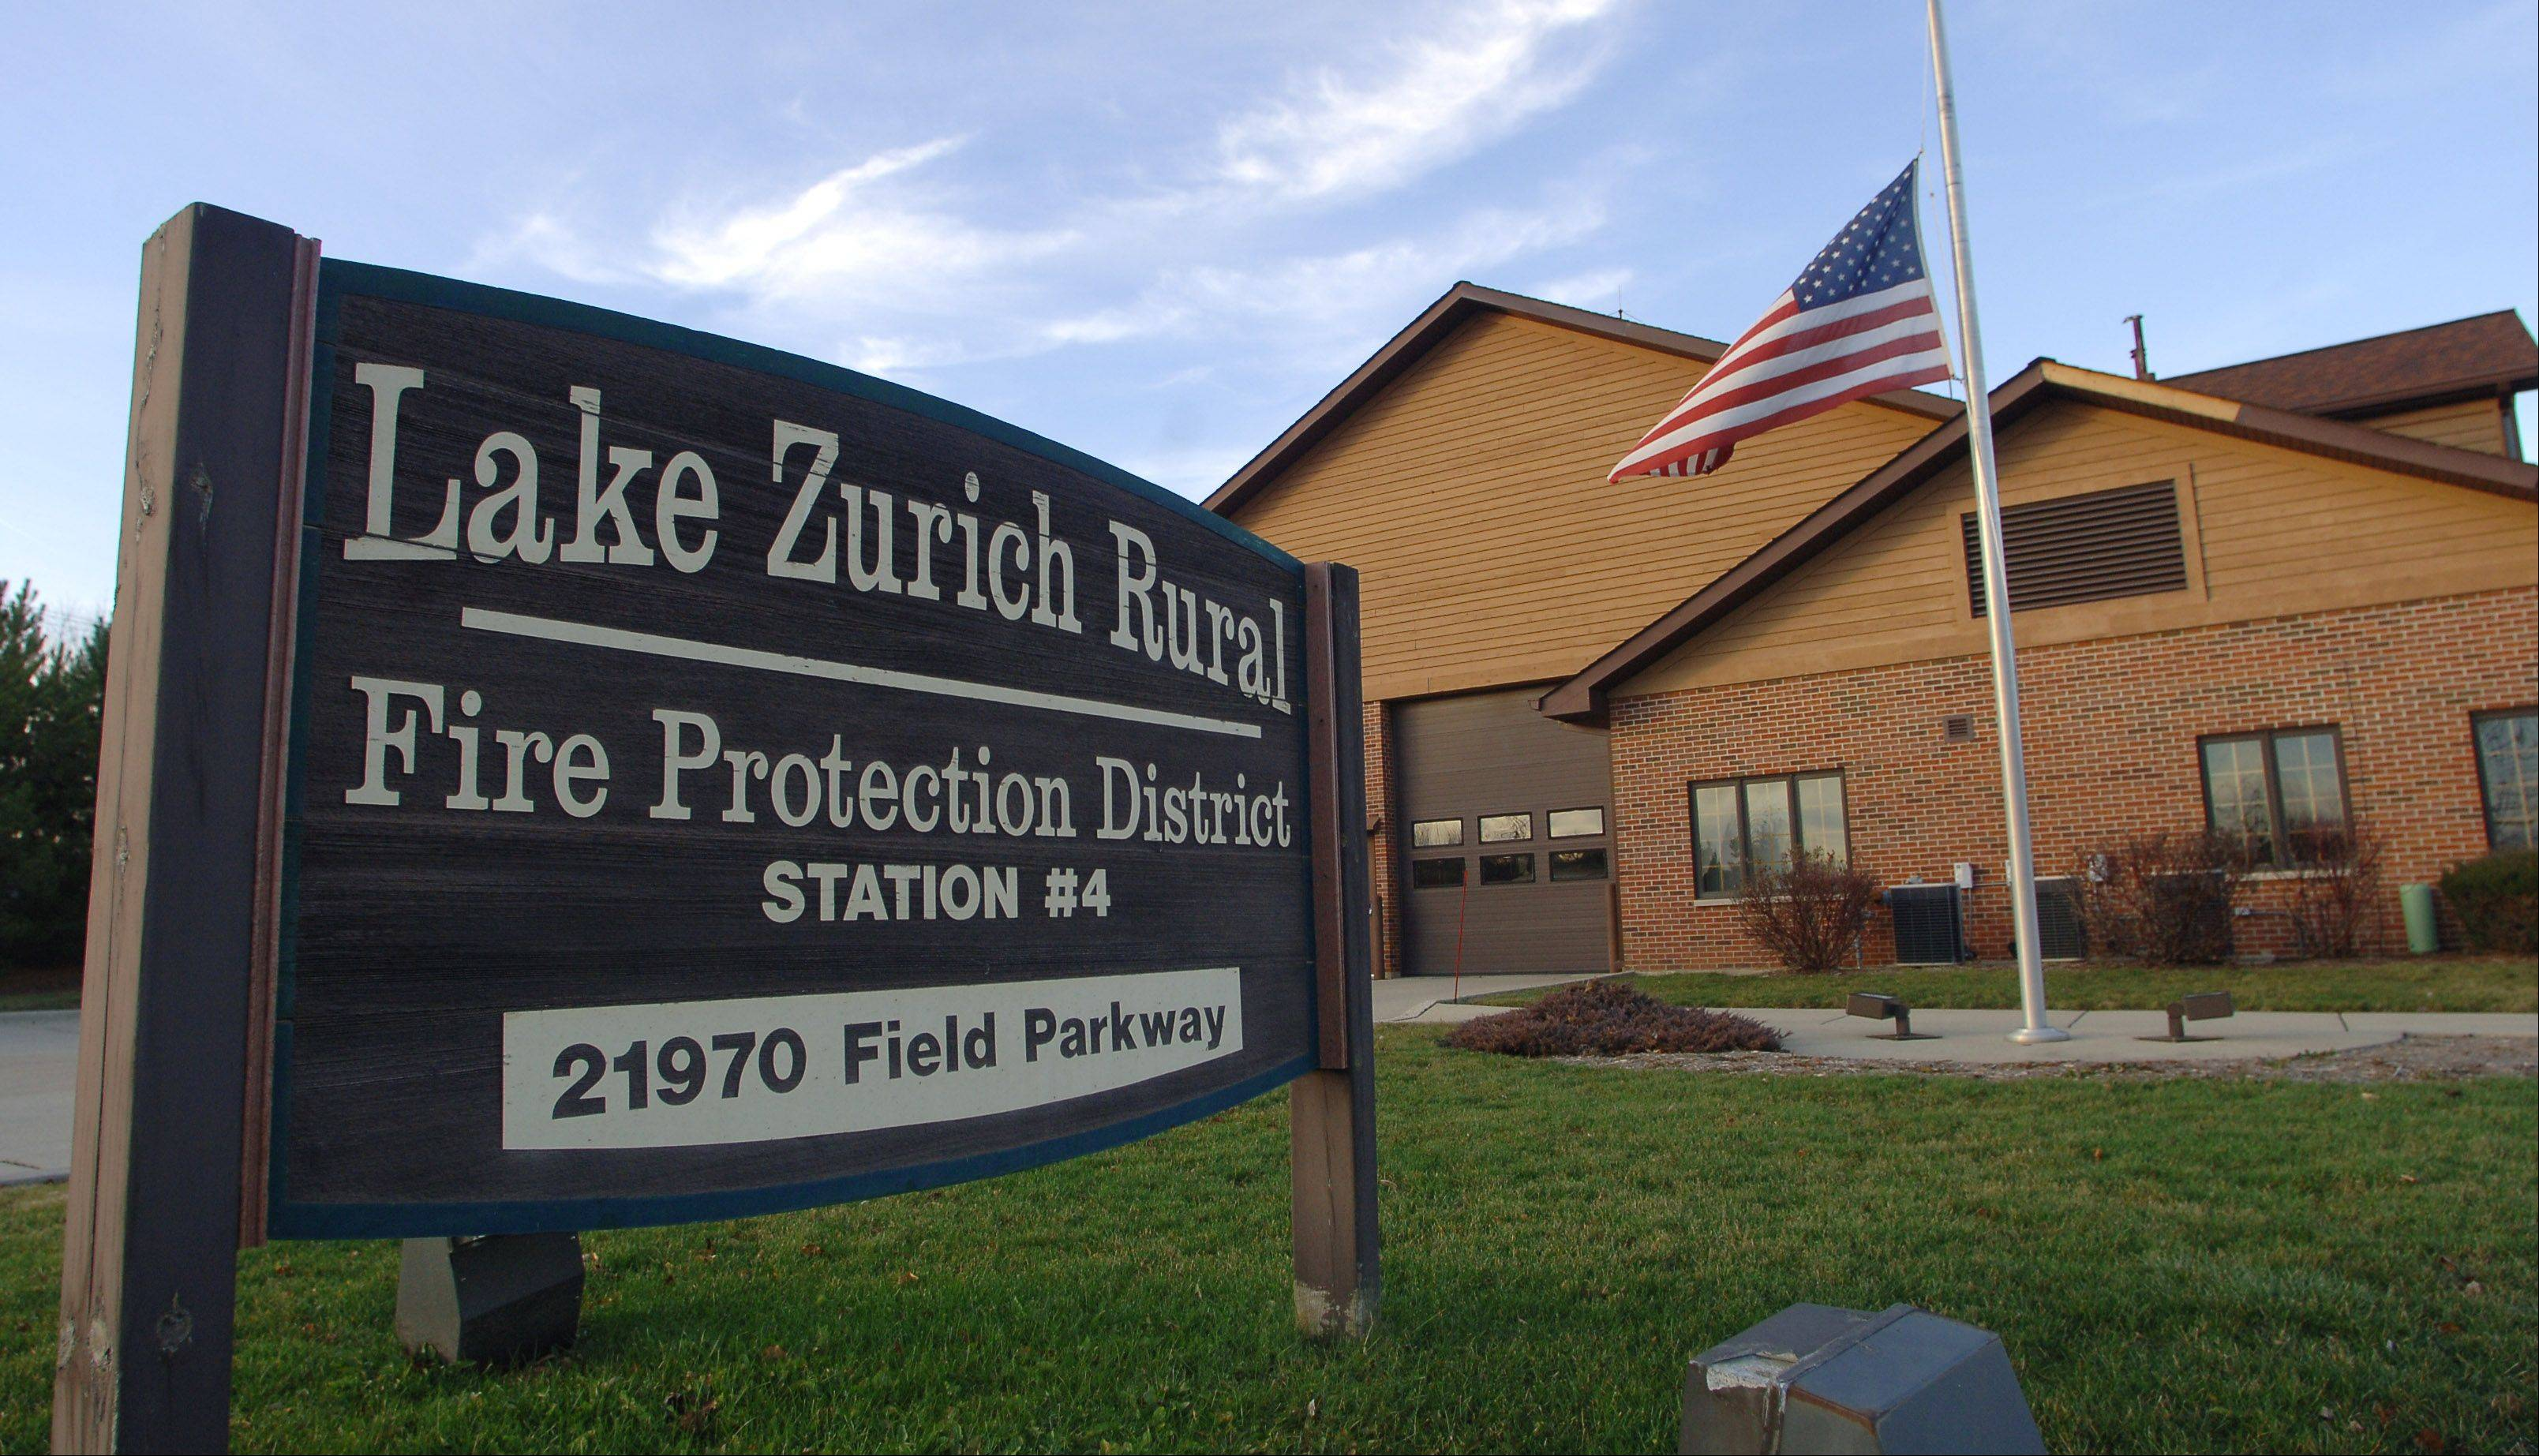 Lake Zurich officials Wednesday night discussed preliminary plans to close two firehouses and replace them with a new station to provide the affected area with the same coverage at less cost. One is the No. 4 station on Field Parkway in Deer Park owned by the Lake Zurich Rural Fire Protection District.